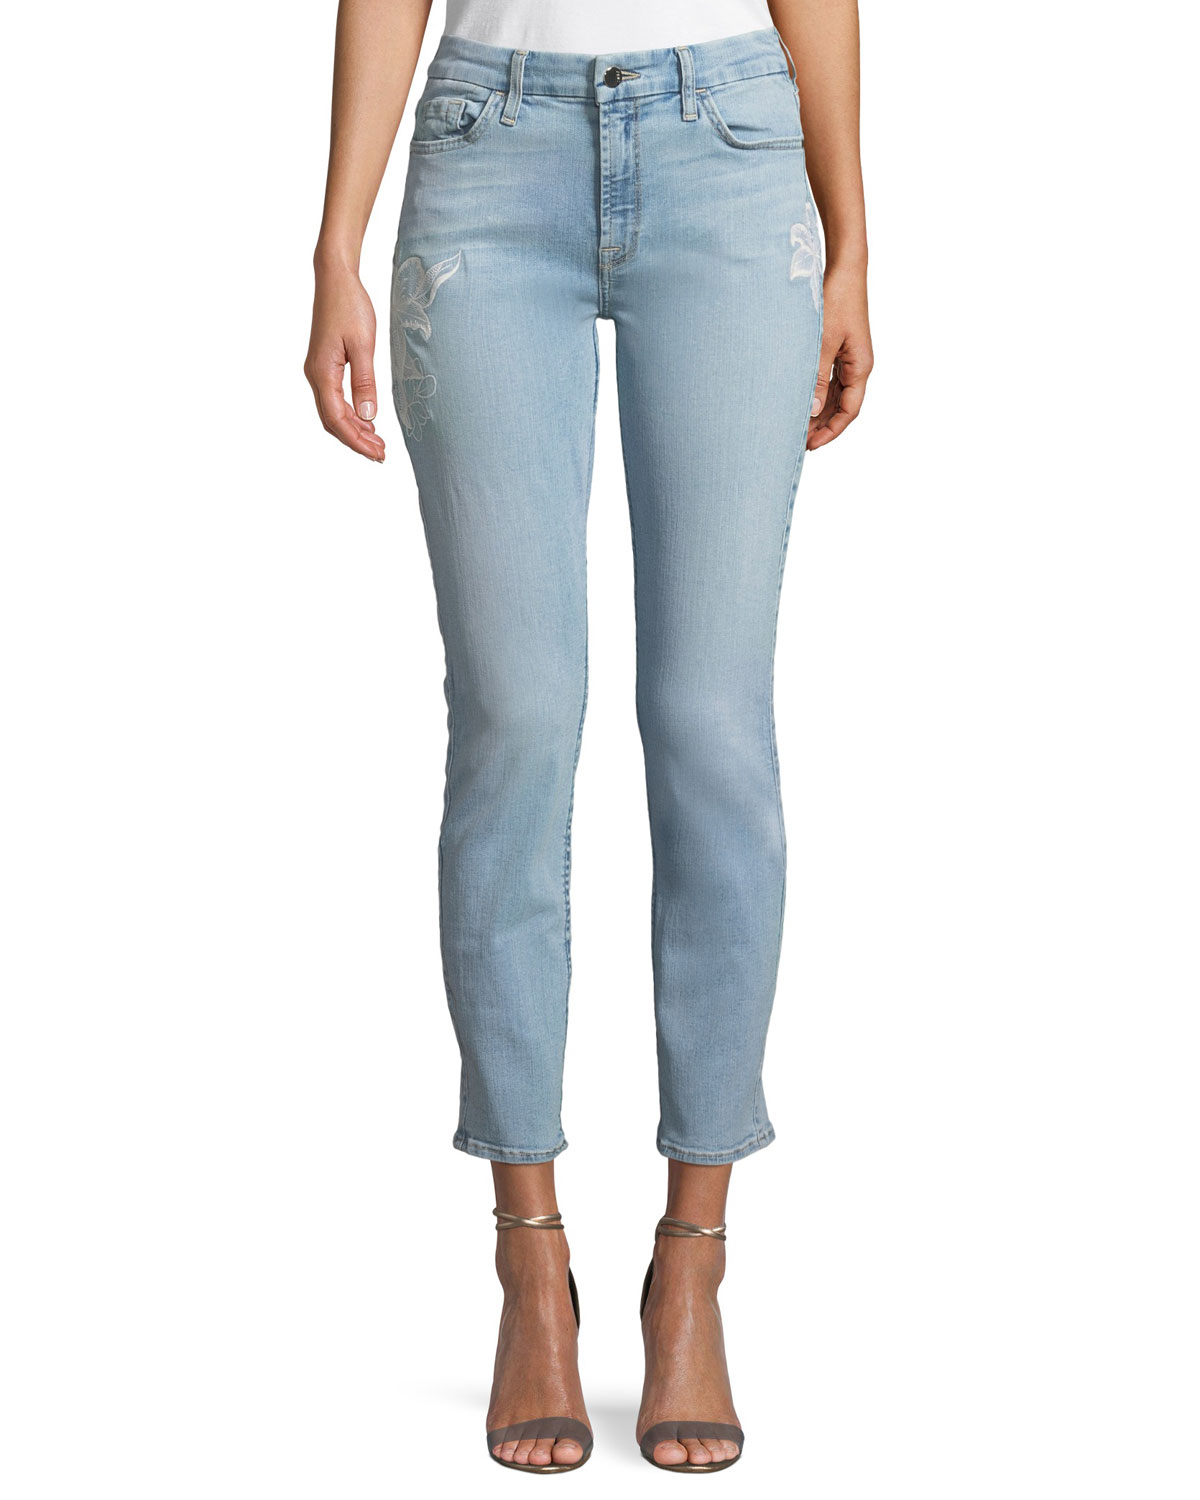 Havana Skinny Floral-Embroidered Ankle Jeans